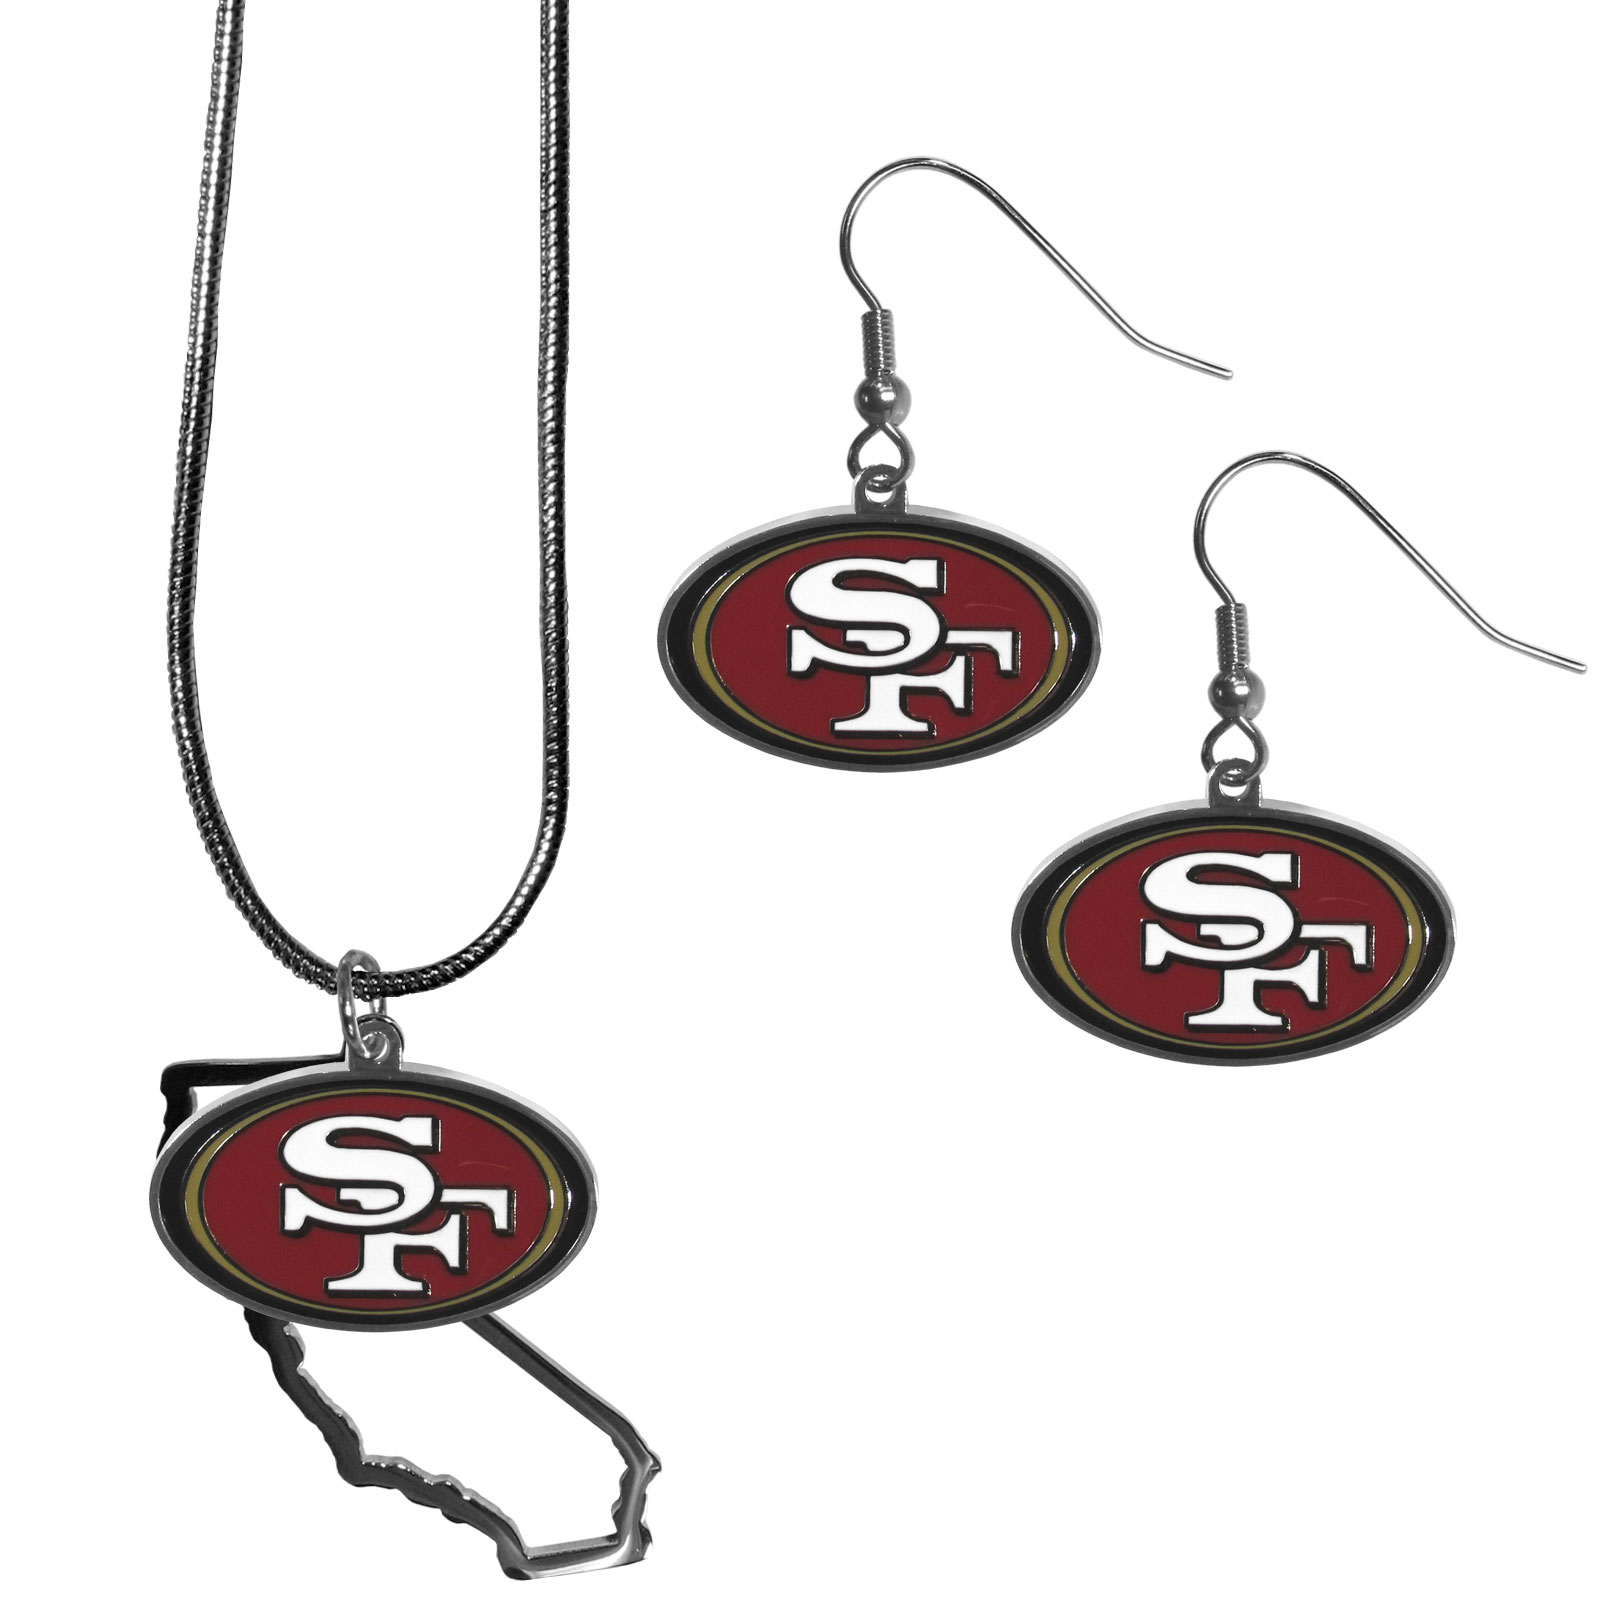 San Francisco 49ers Dangle Earrings and State Necklace Set - Get in on the trend! State themes are a trend that just keeps getting more popular and this jewelry set takes the state style and give it a sporty twist with a San Francisco 49ers necklace that features an Arizona state outline charm paired with a beautiful team charm and matching team charm dangle earrings. The earrings feature hypoallergenic fishhook posts that are nickel free.